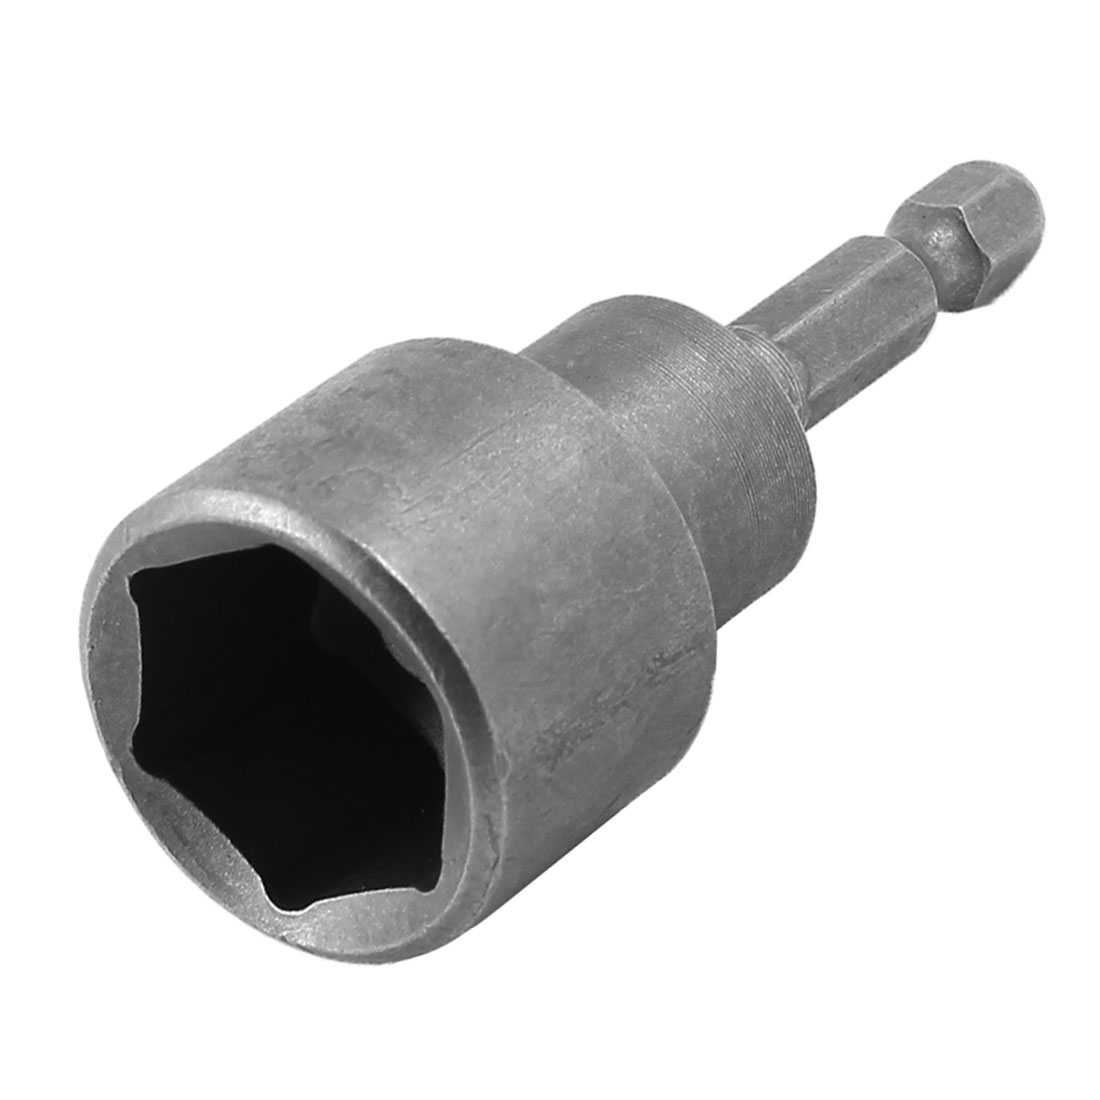 "Metal 0.7"" 18mm Magnetic Hex Socket Spanner Nut Driver Bit Gray"